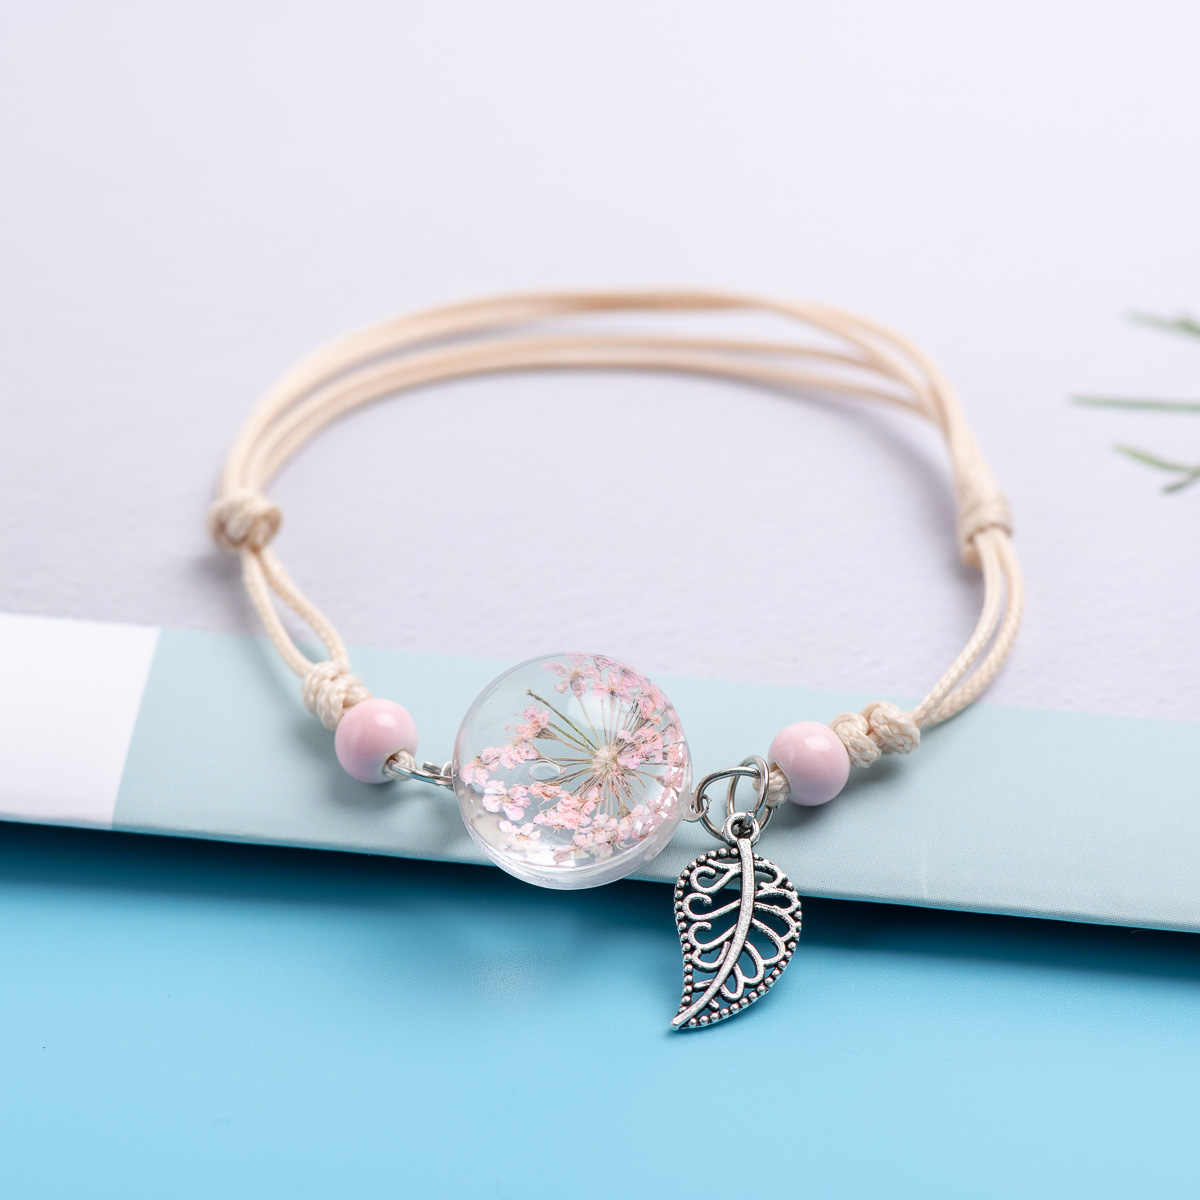 Ceramic Beads Glass Charms Bracelets Crystal Transparency Flower DIY Boho Ceramic Bracelets Party gift #DY522